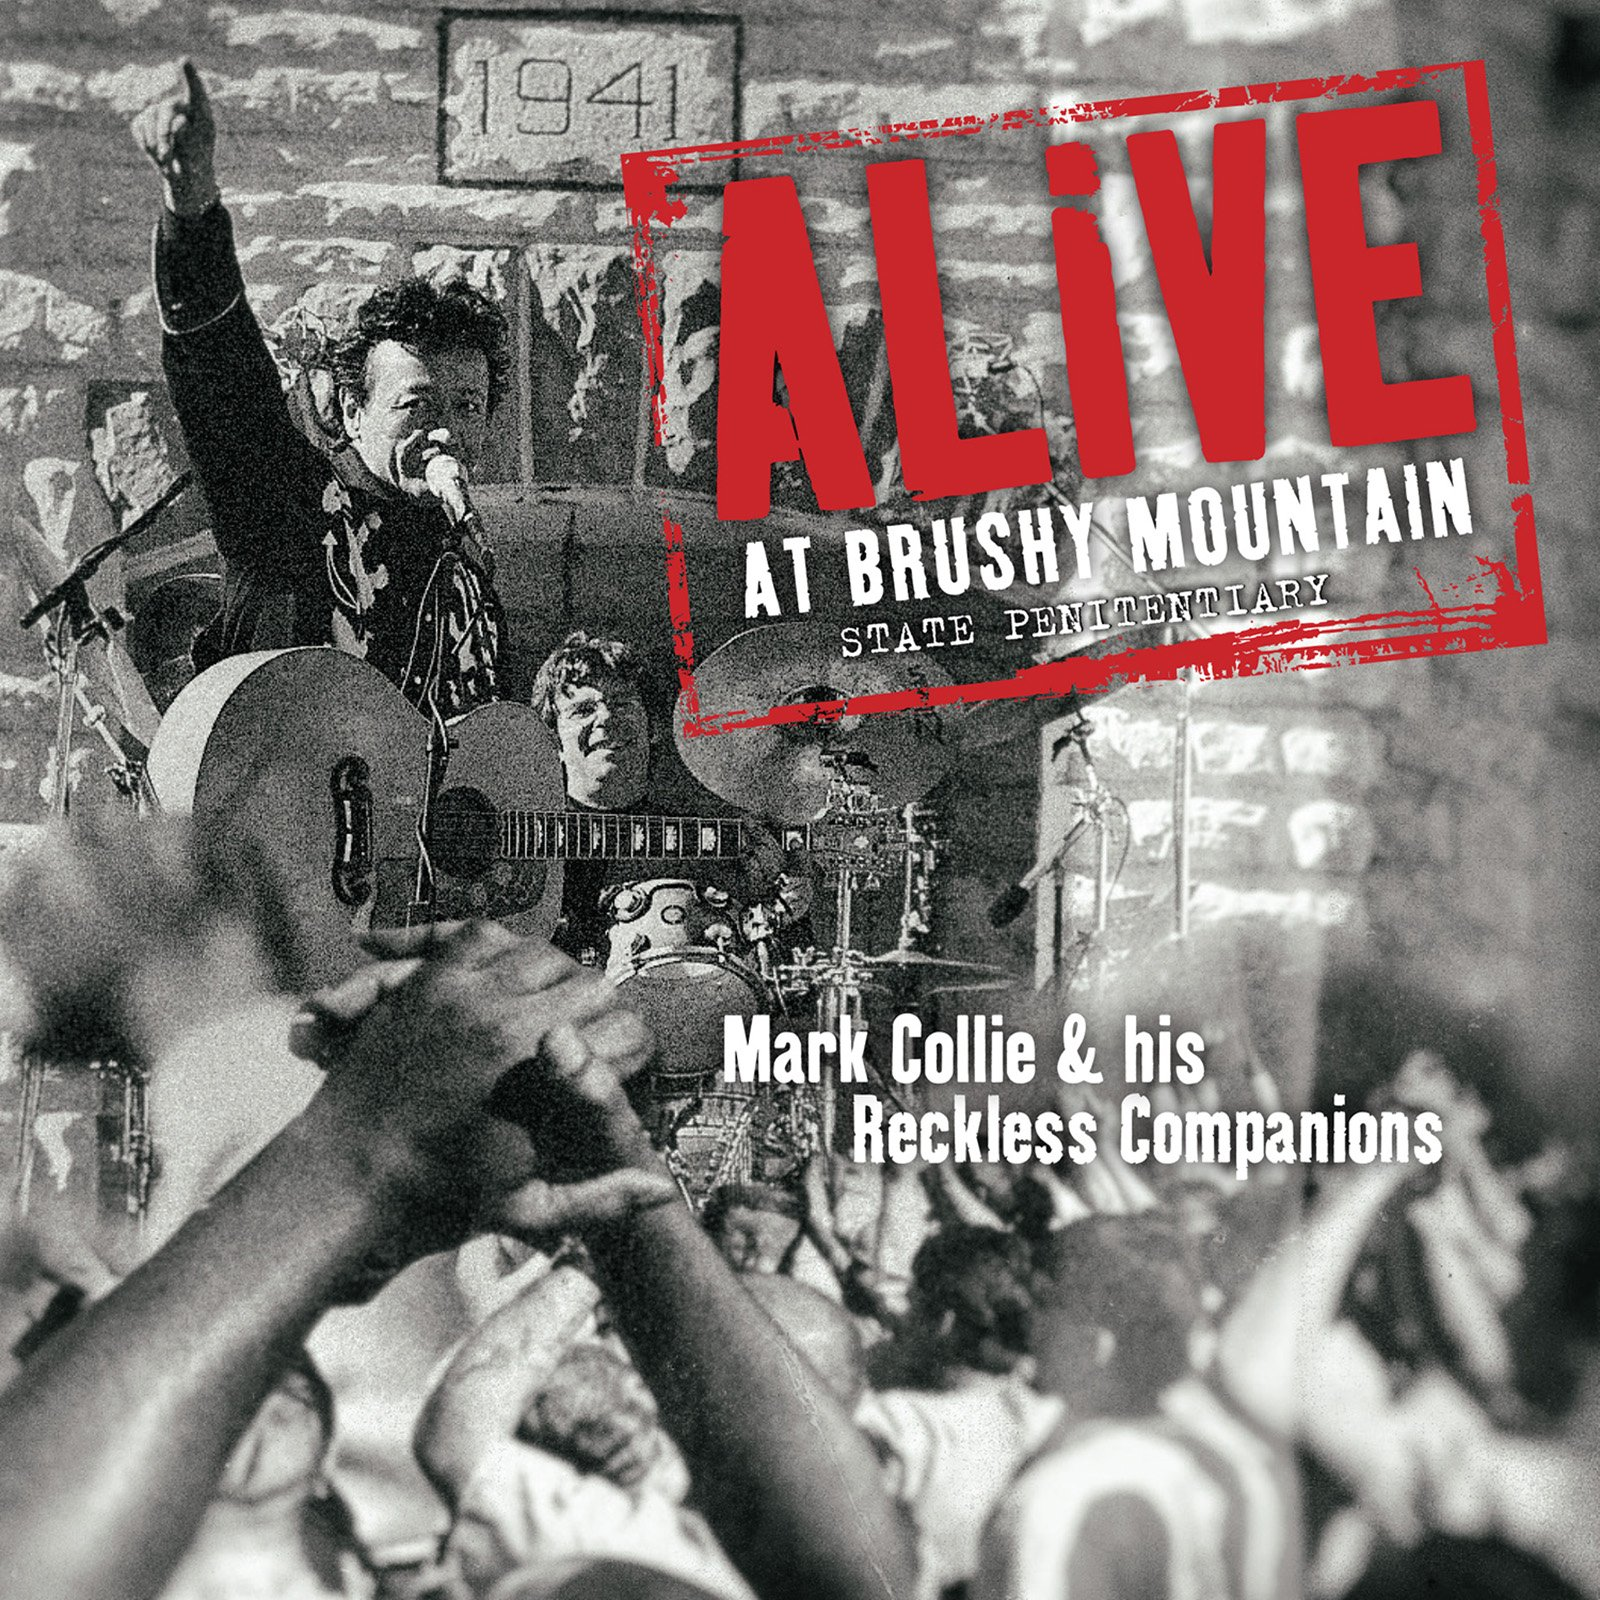 Vinilo : MARK COLLIE & HIS RECKLESS COMPANIONS - Alive At Brushy Mountain State Penitentiary (LP Vinyl)